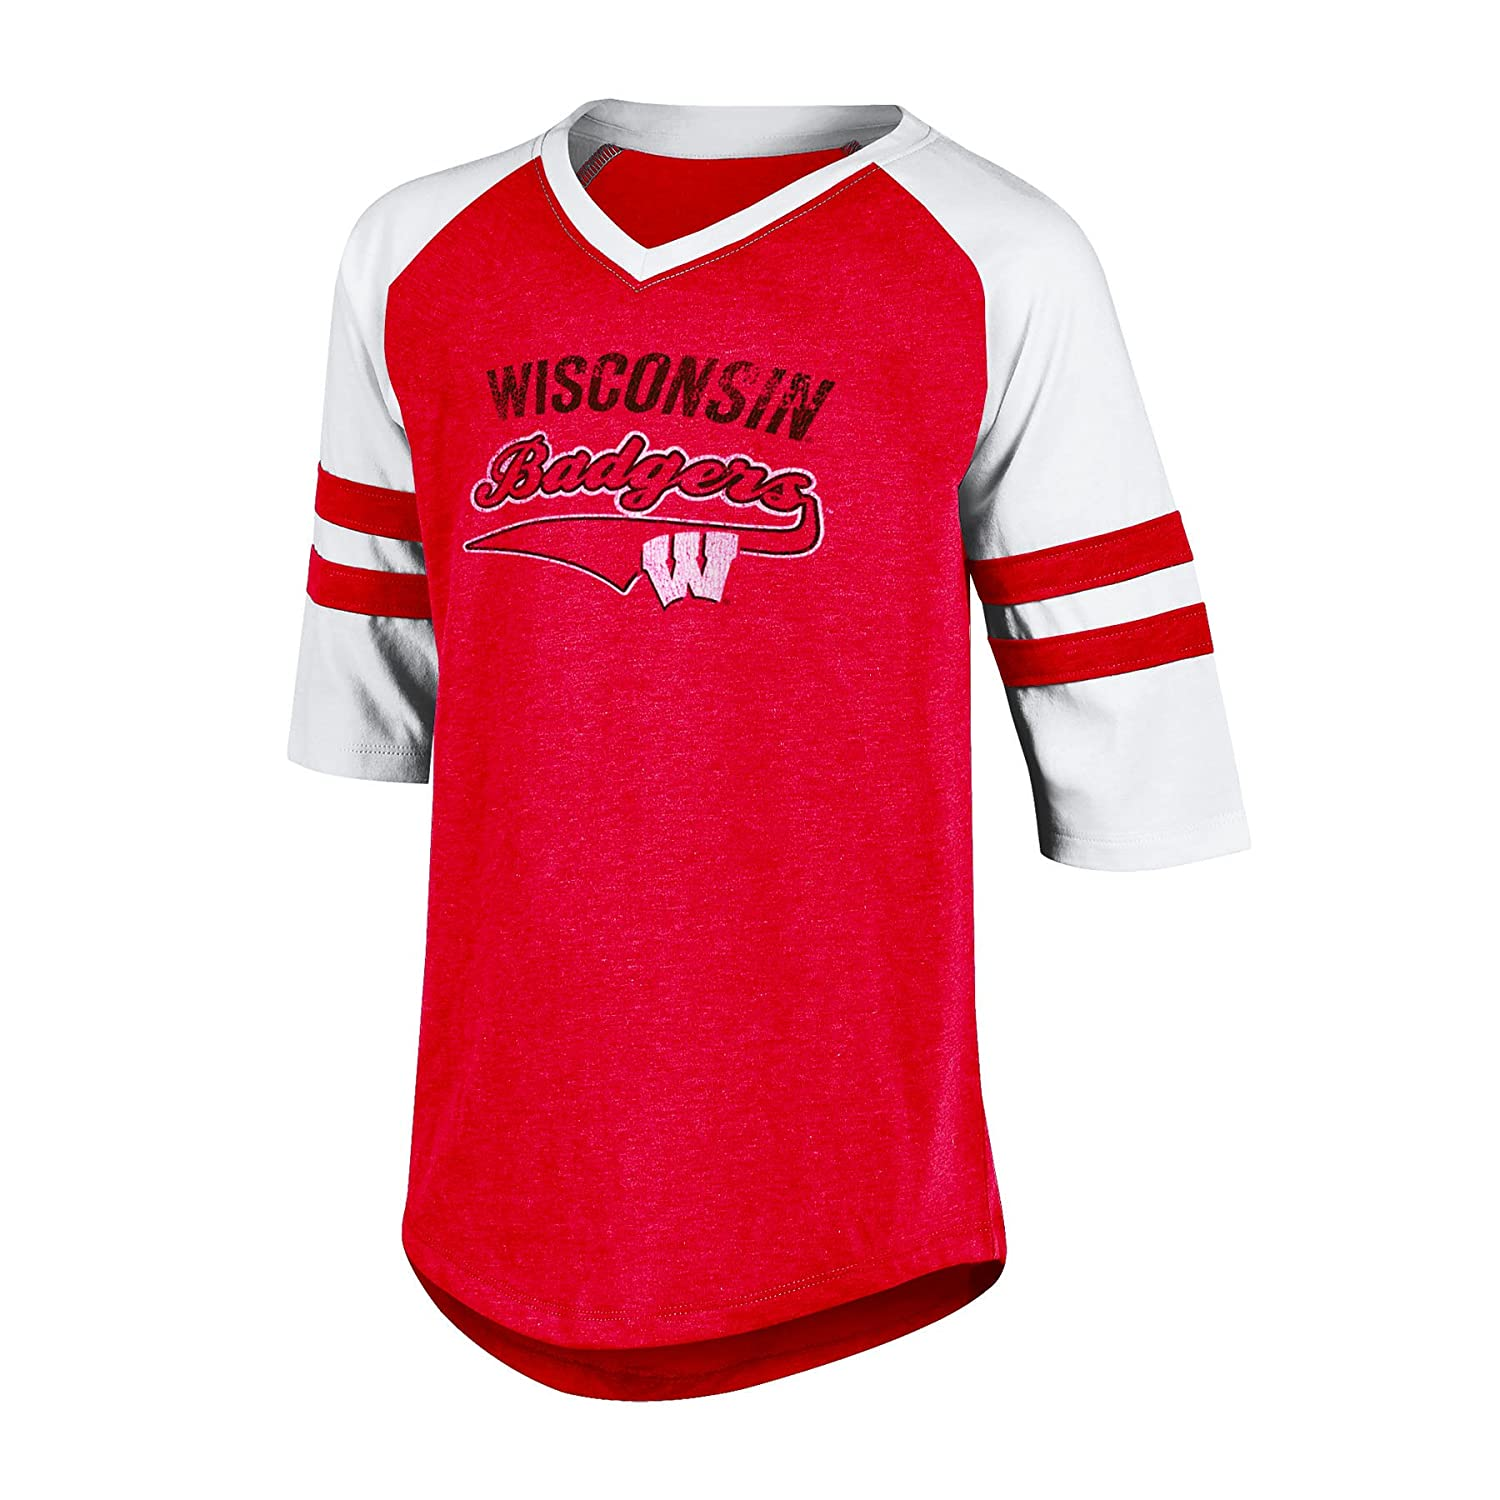 Medium Champion NCAA Wisconsin Badgers Girls 3//4 Raglan Sleeve V-Neck Tunic Tee with Sleeve Taping Red Heather